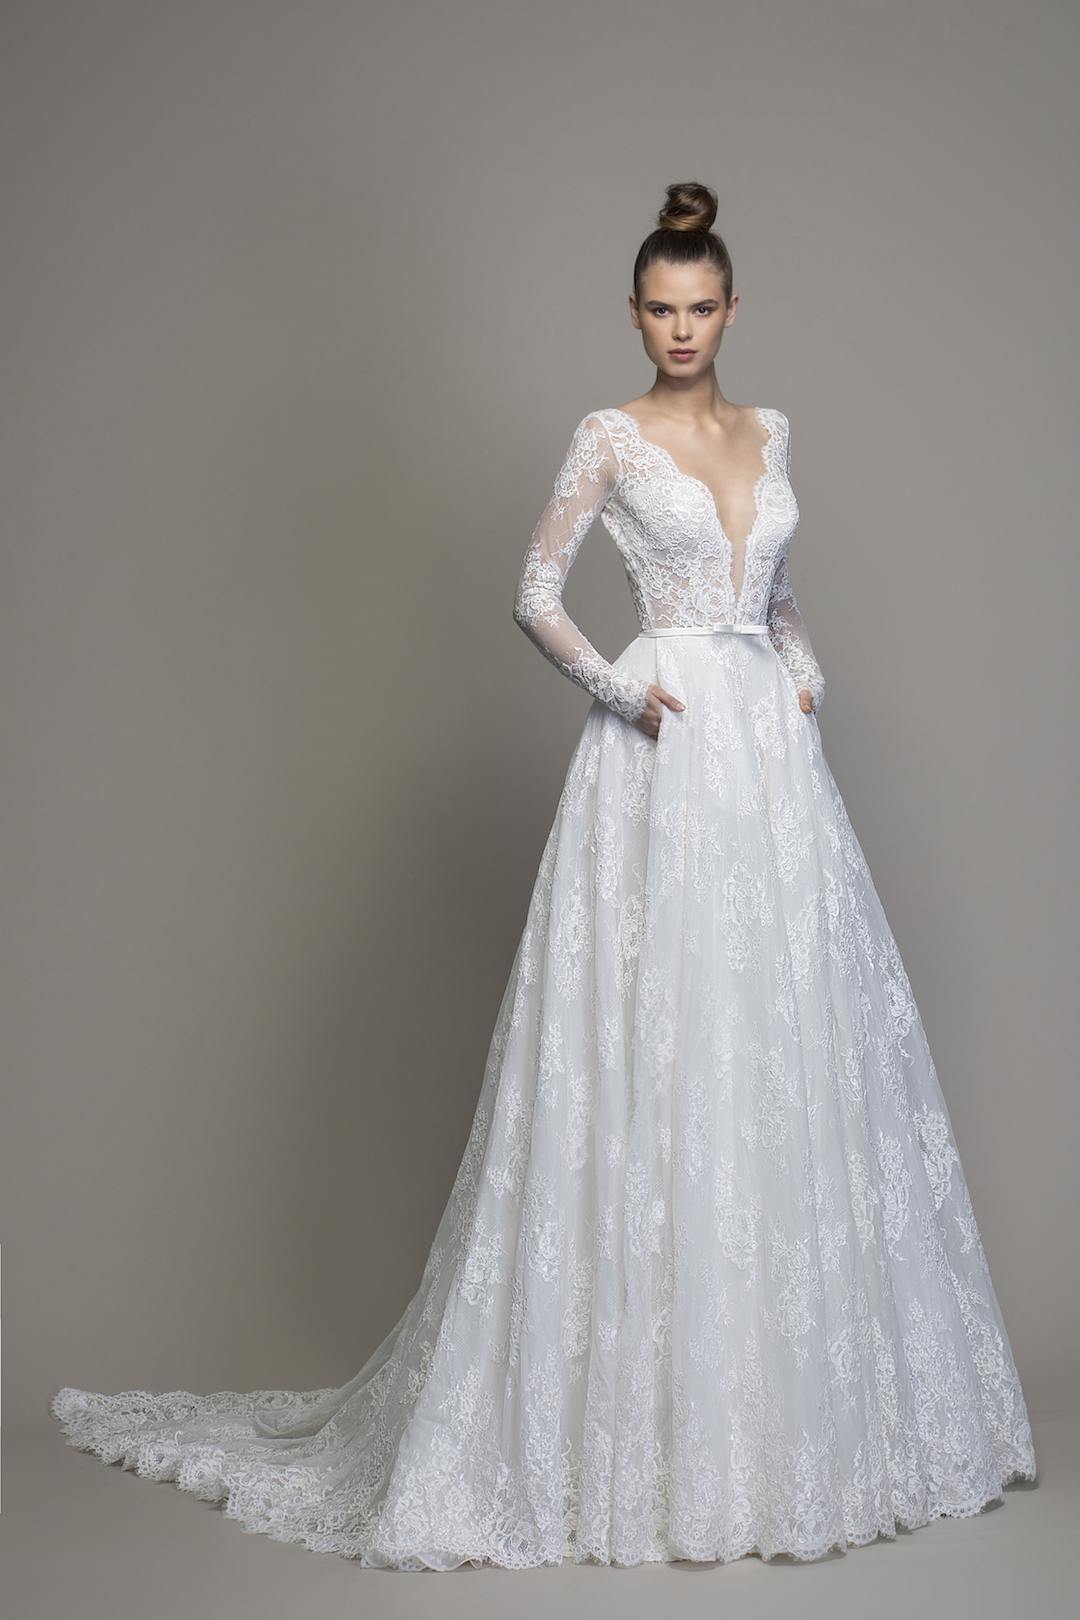 Pnina Tornai's new LOVE 2020 Collection is out! This is style 14781